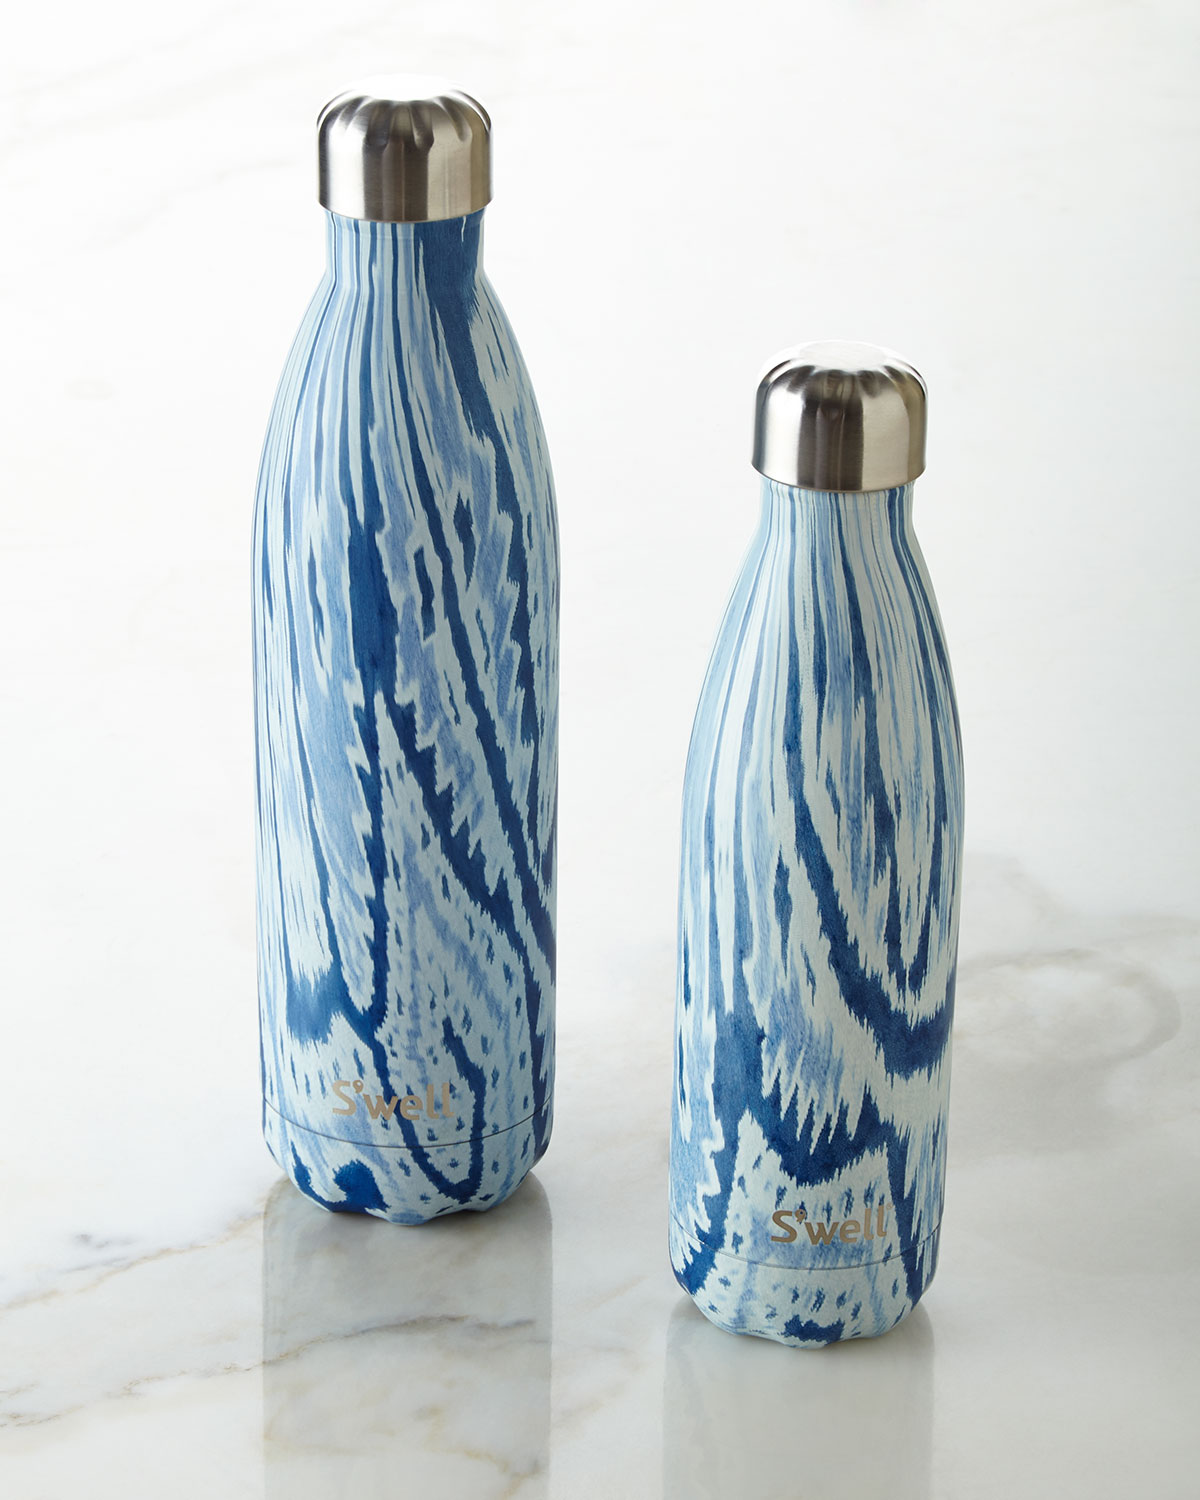 Santorini 17-oz. Reusable Bottle